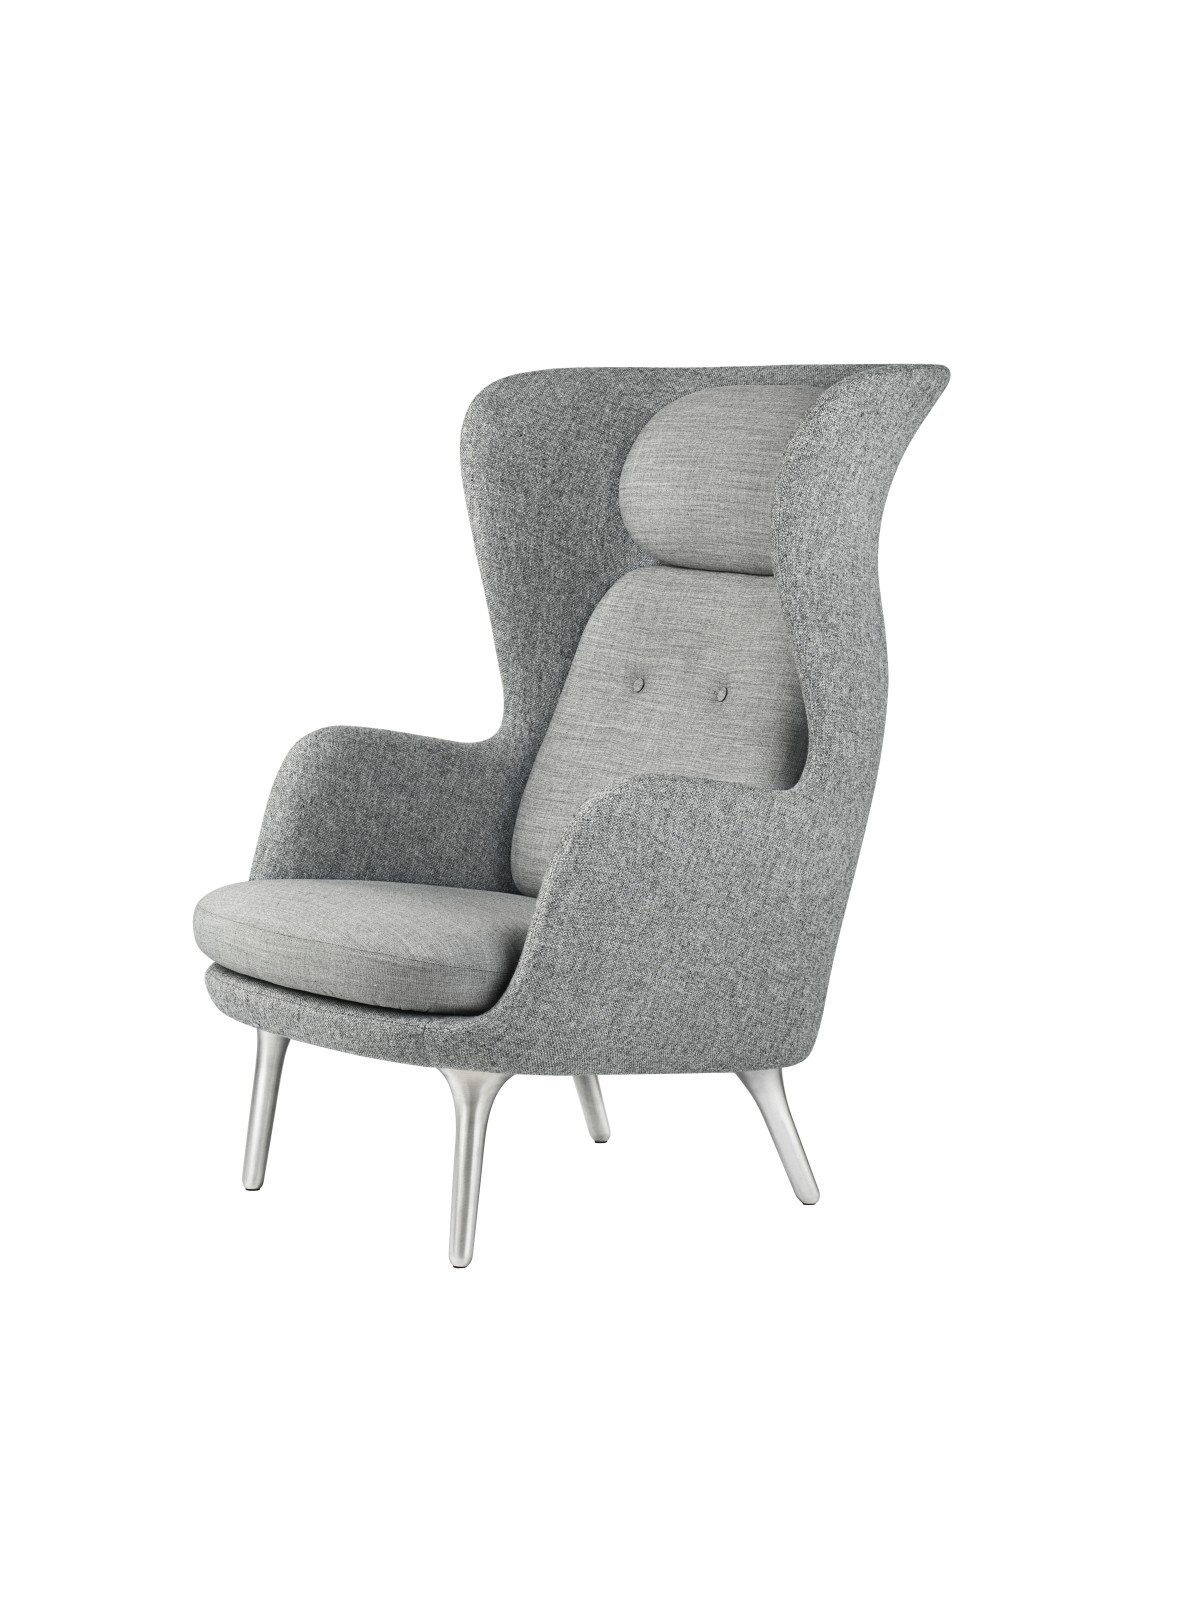 Ro Easy Chair With Aluminium Legs - Designer Selection Light Grey